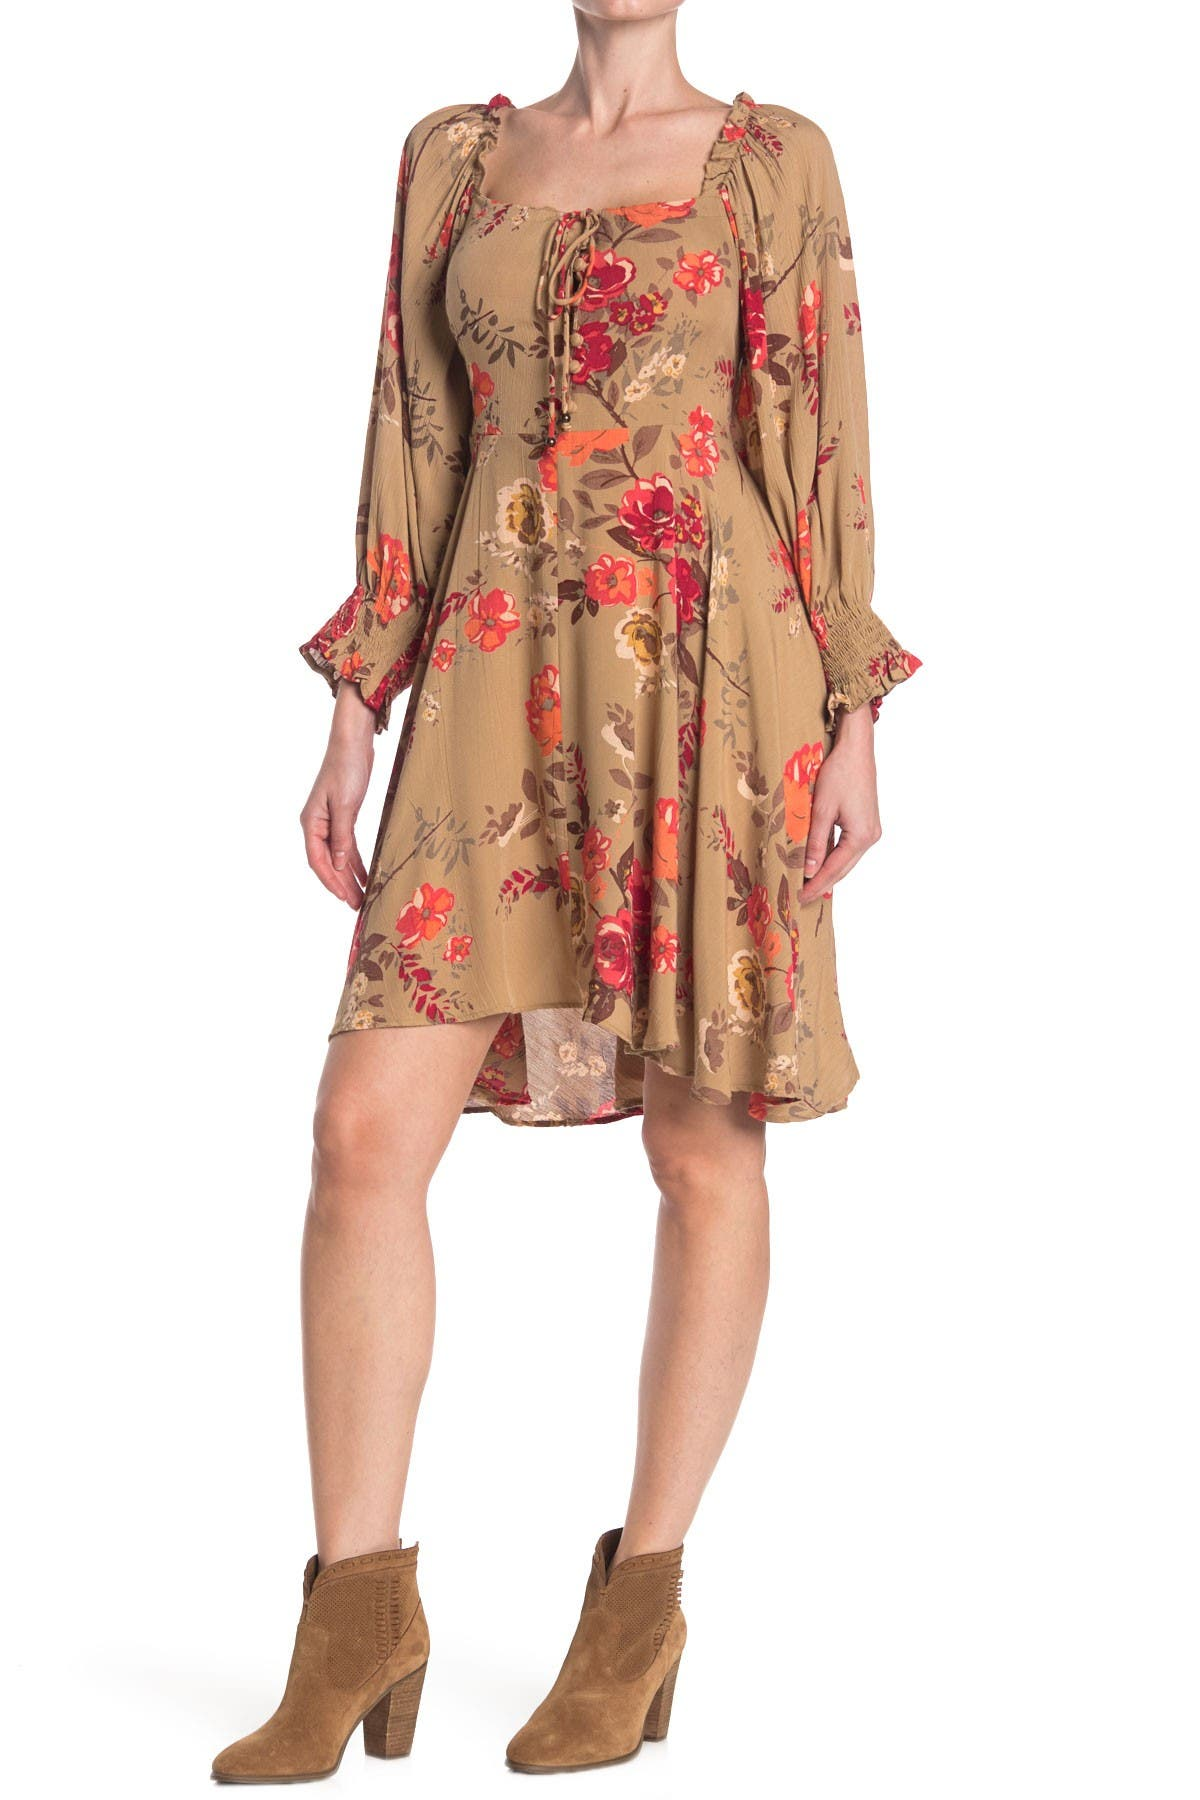 Image of Angie Long Sleeve Printed Tie Front Dress